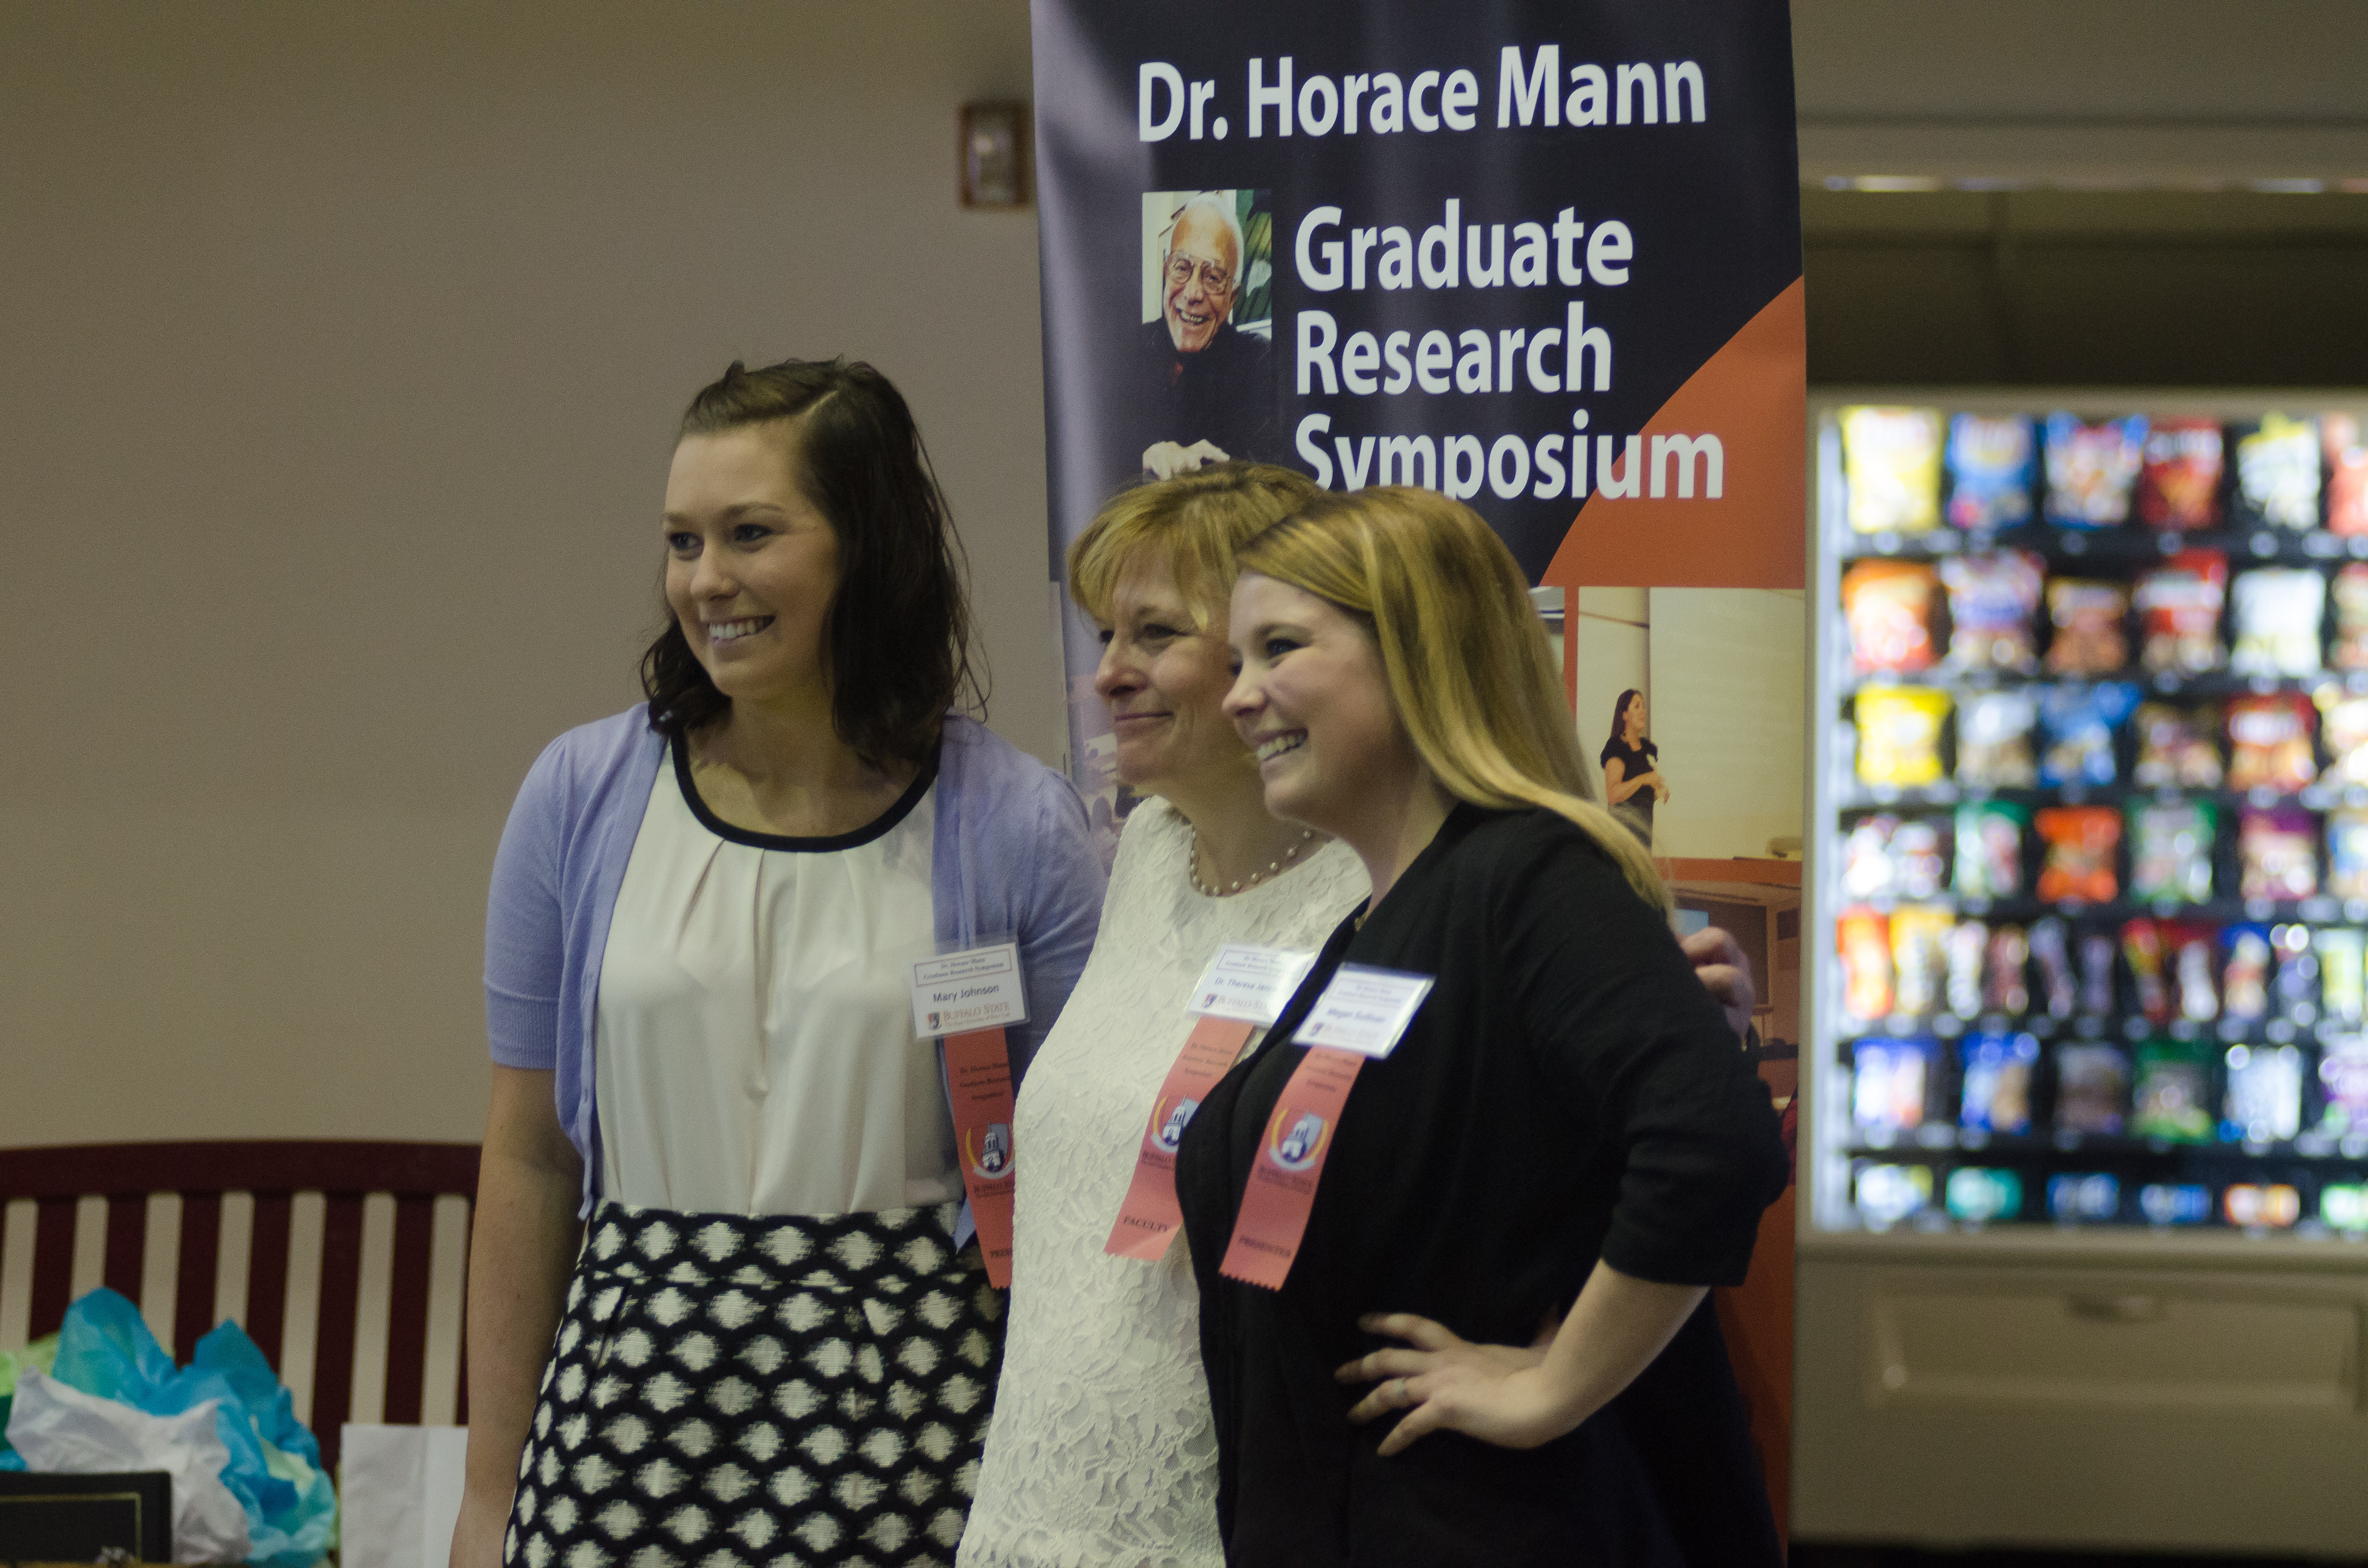 Horace Mann Graduate Research Symposium students